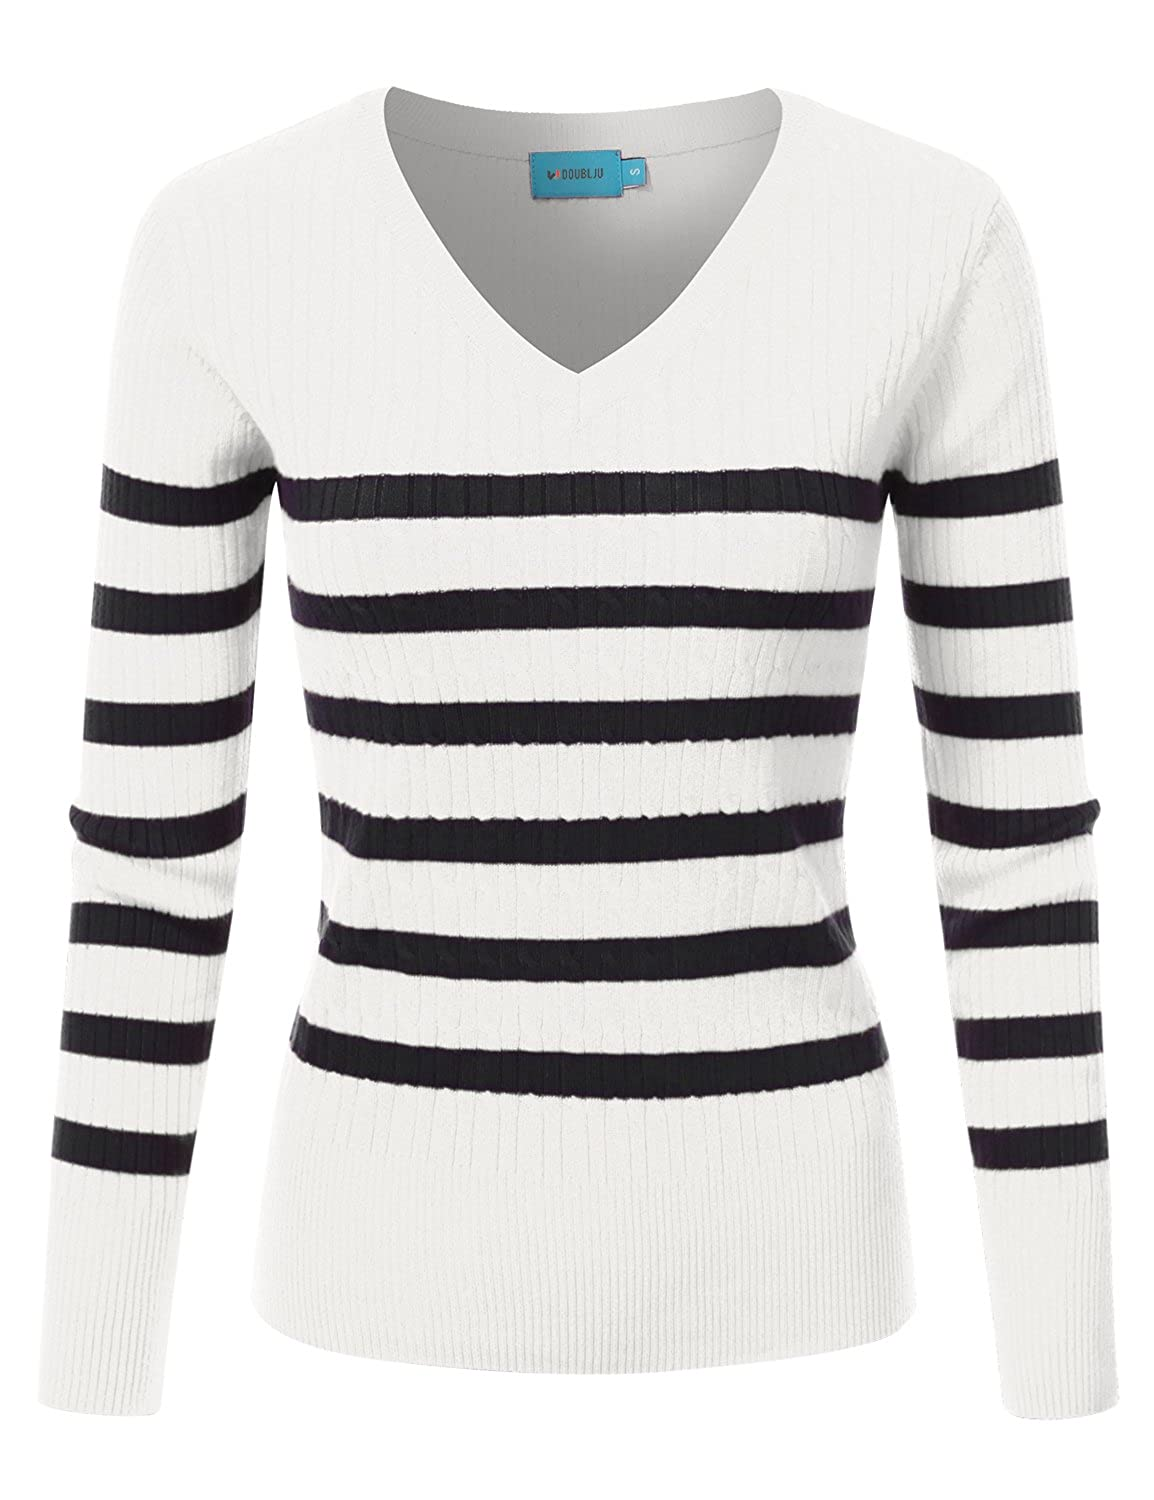 Awoswl0221_whiteblack Doublju Slim Fit Twisted Cable Knit VNeck Sweater For Women